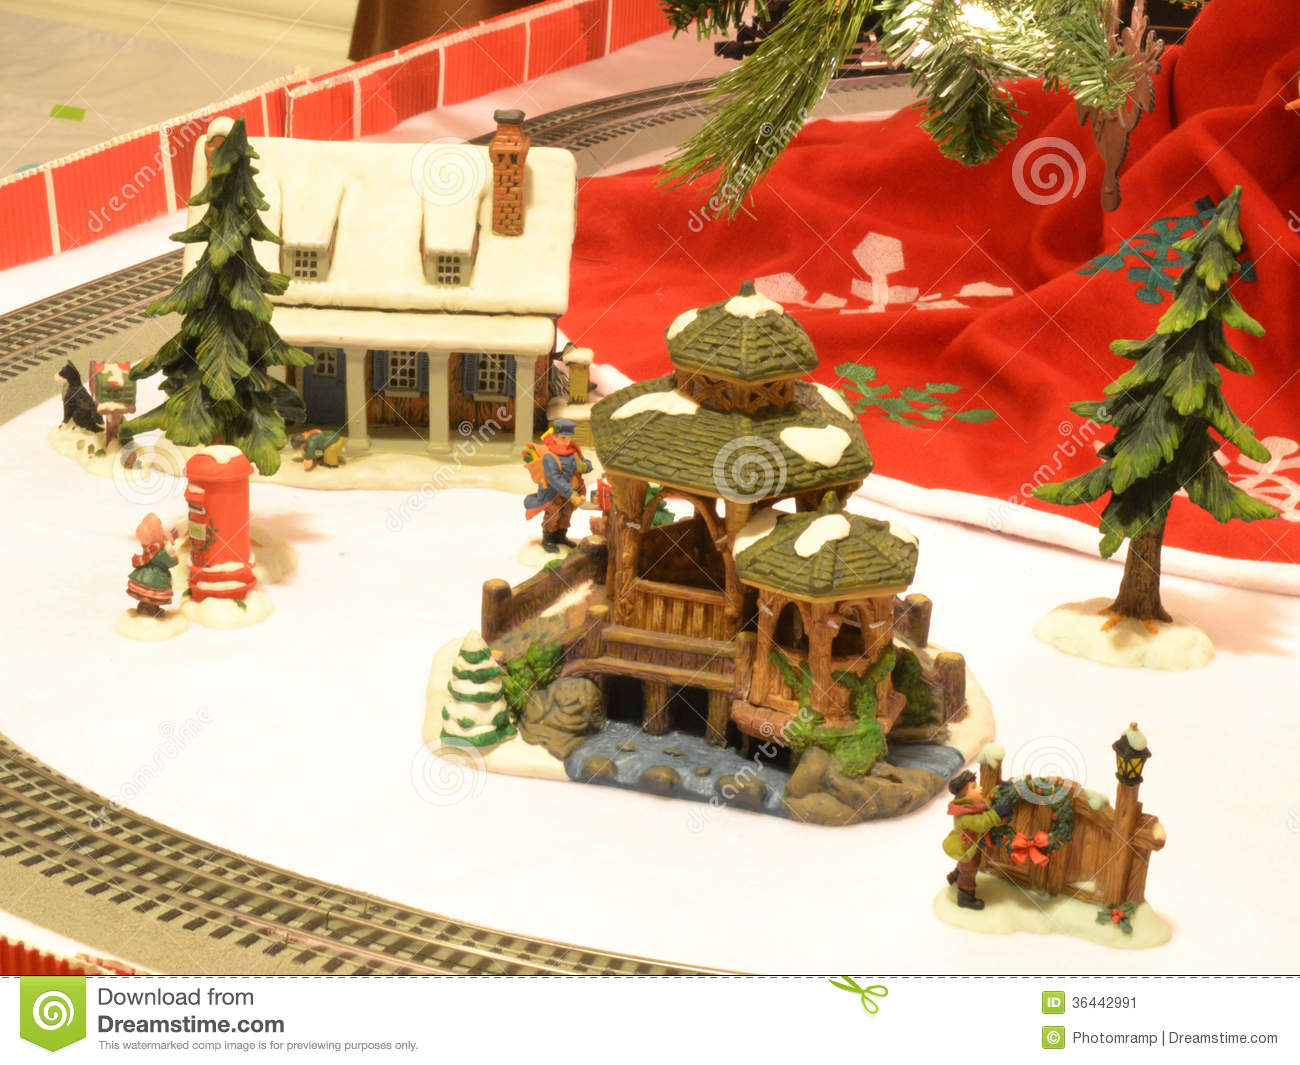 christmas decorations under tree with train in the background - Christmas Village Decorations